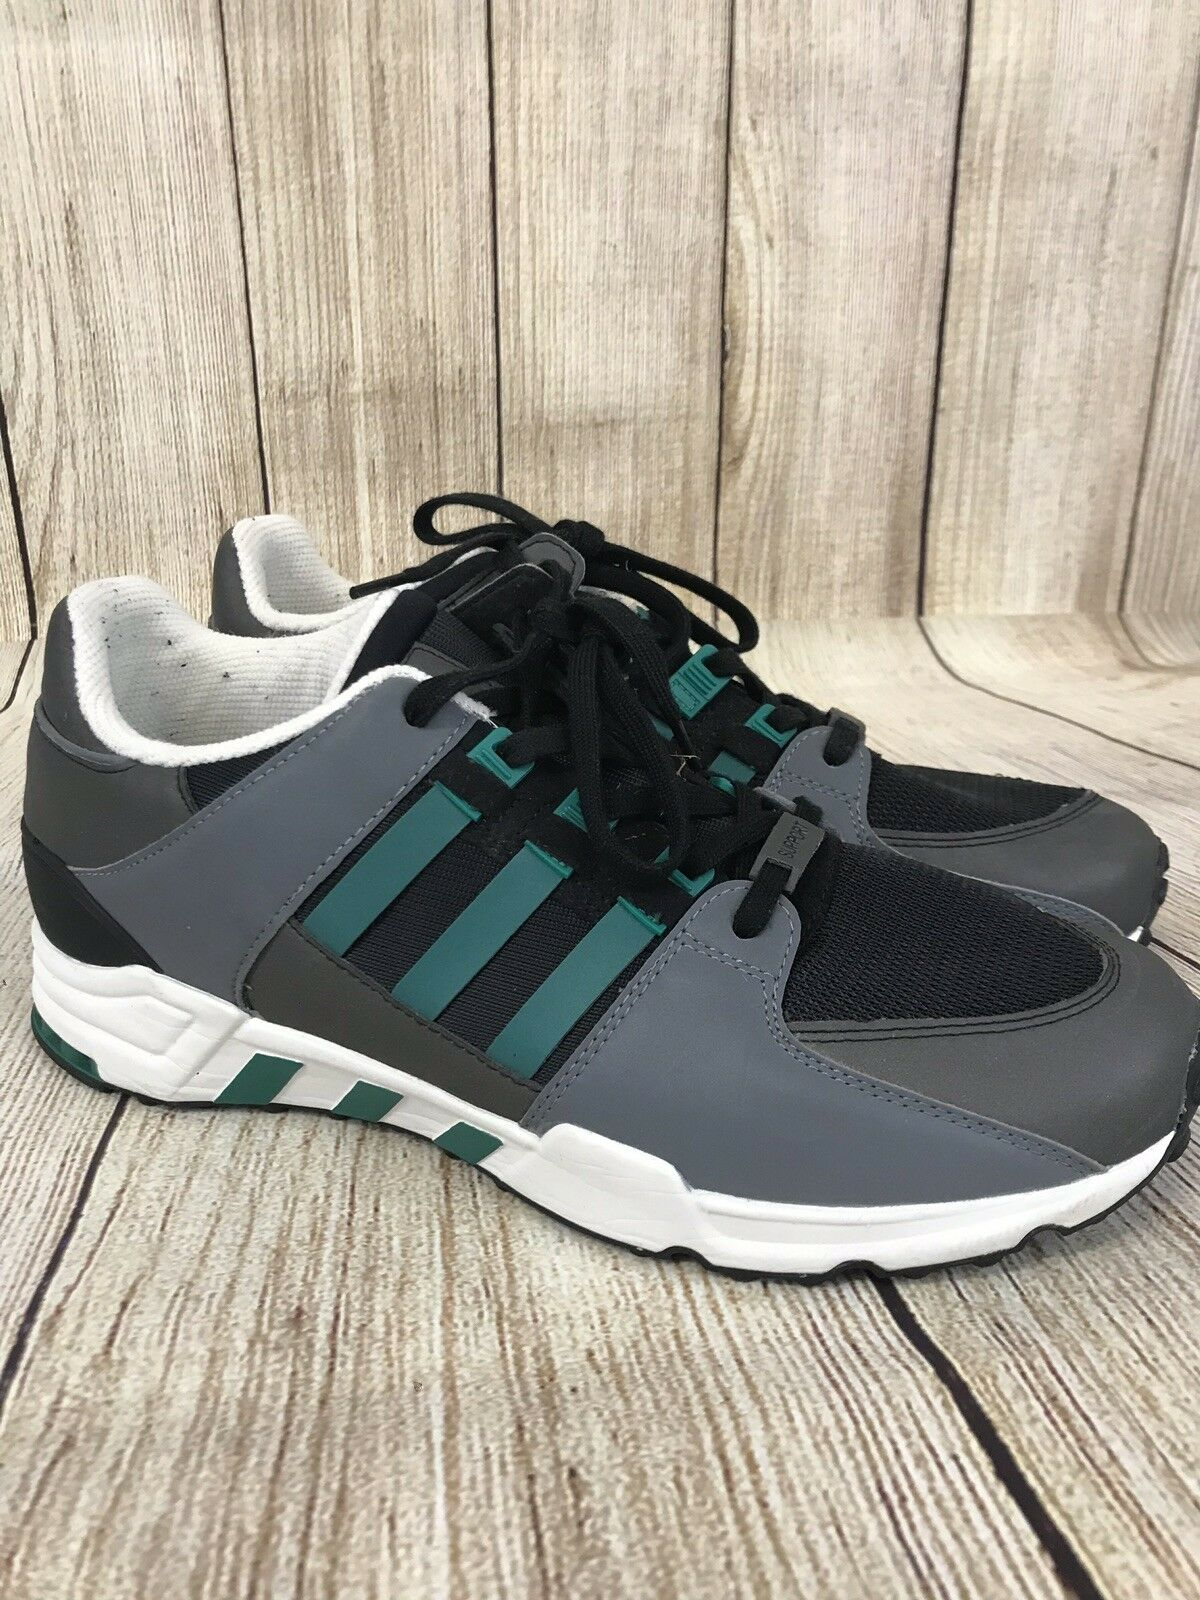 Adidas Originals Equipment Running Support EQT 3M BLK GRN GREY Men's 12.5 S32144